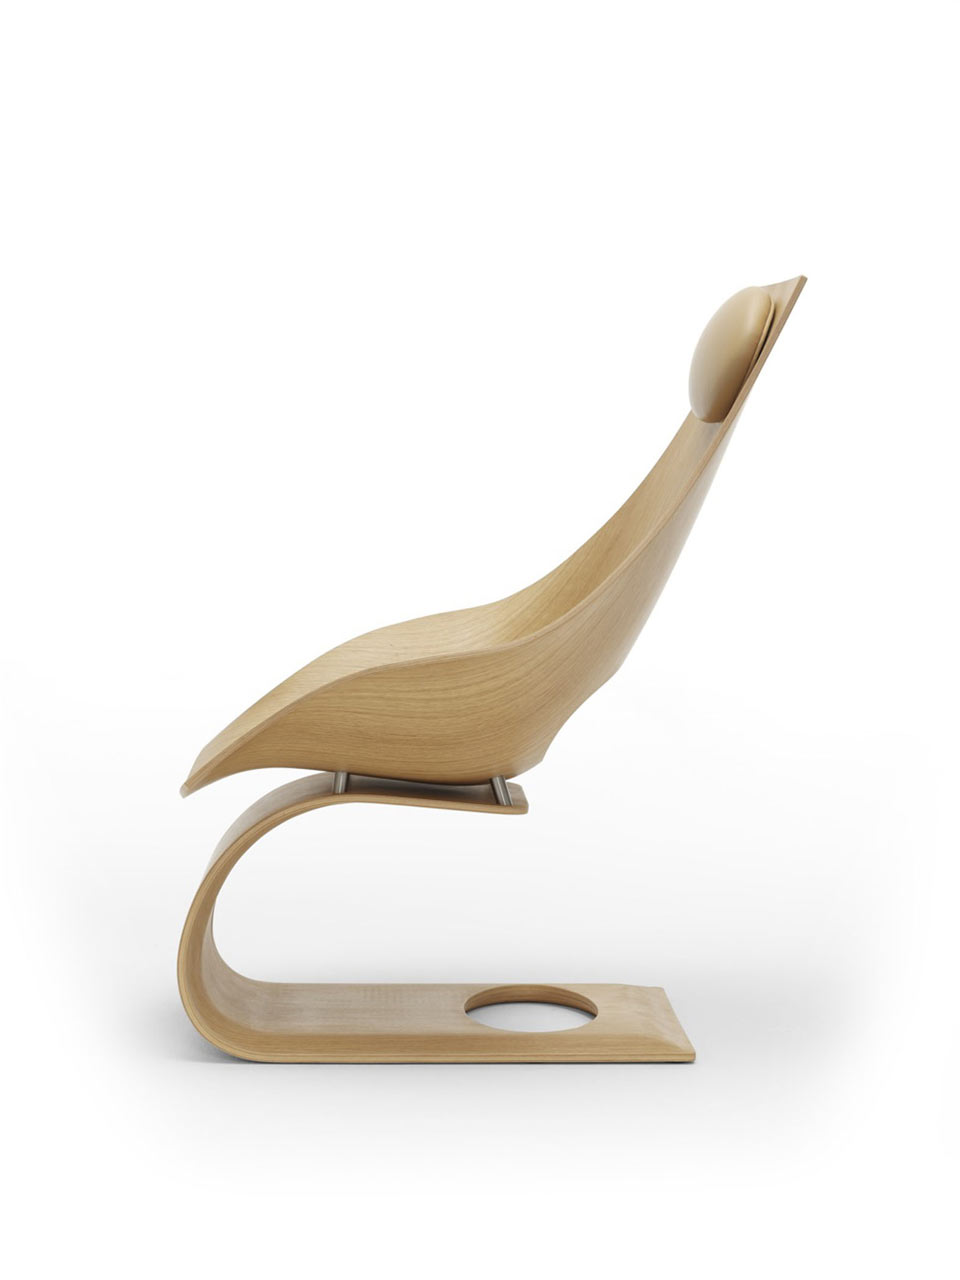 Dream-Chair-Tadao-Ando-Carl-Hansen-6